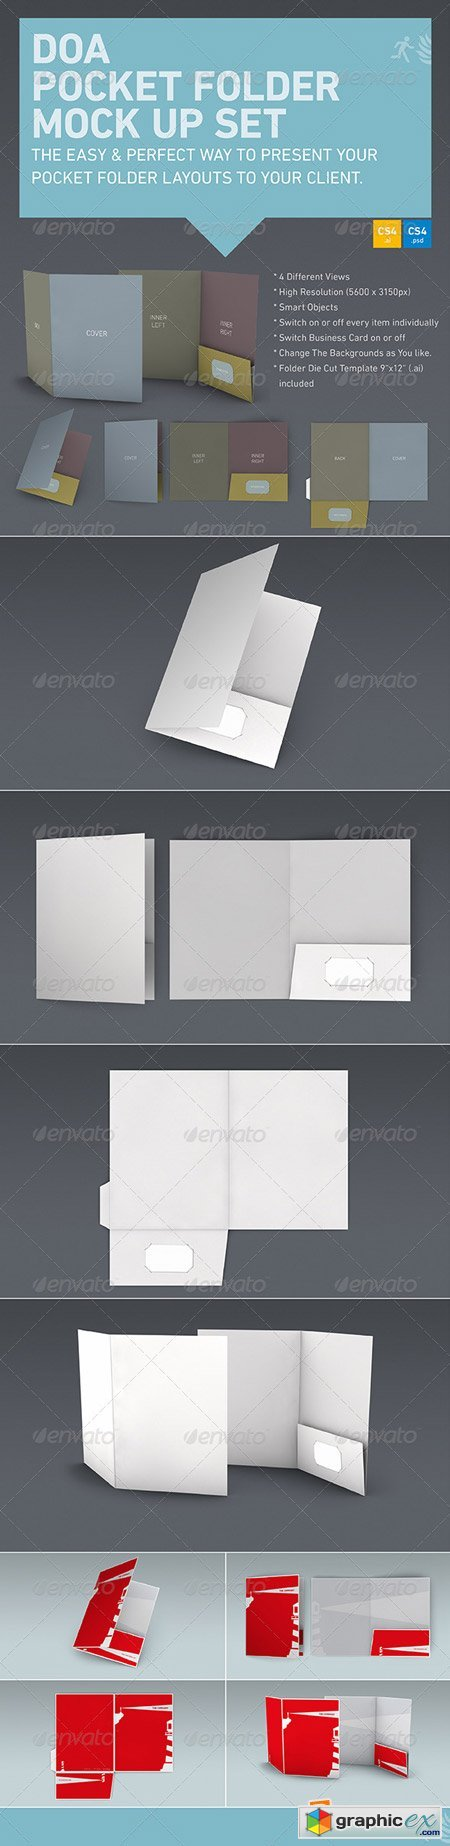 DOA Pocket Folder Mock Up Set 5256496